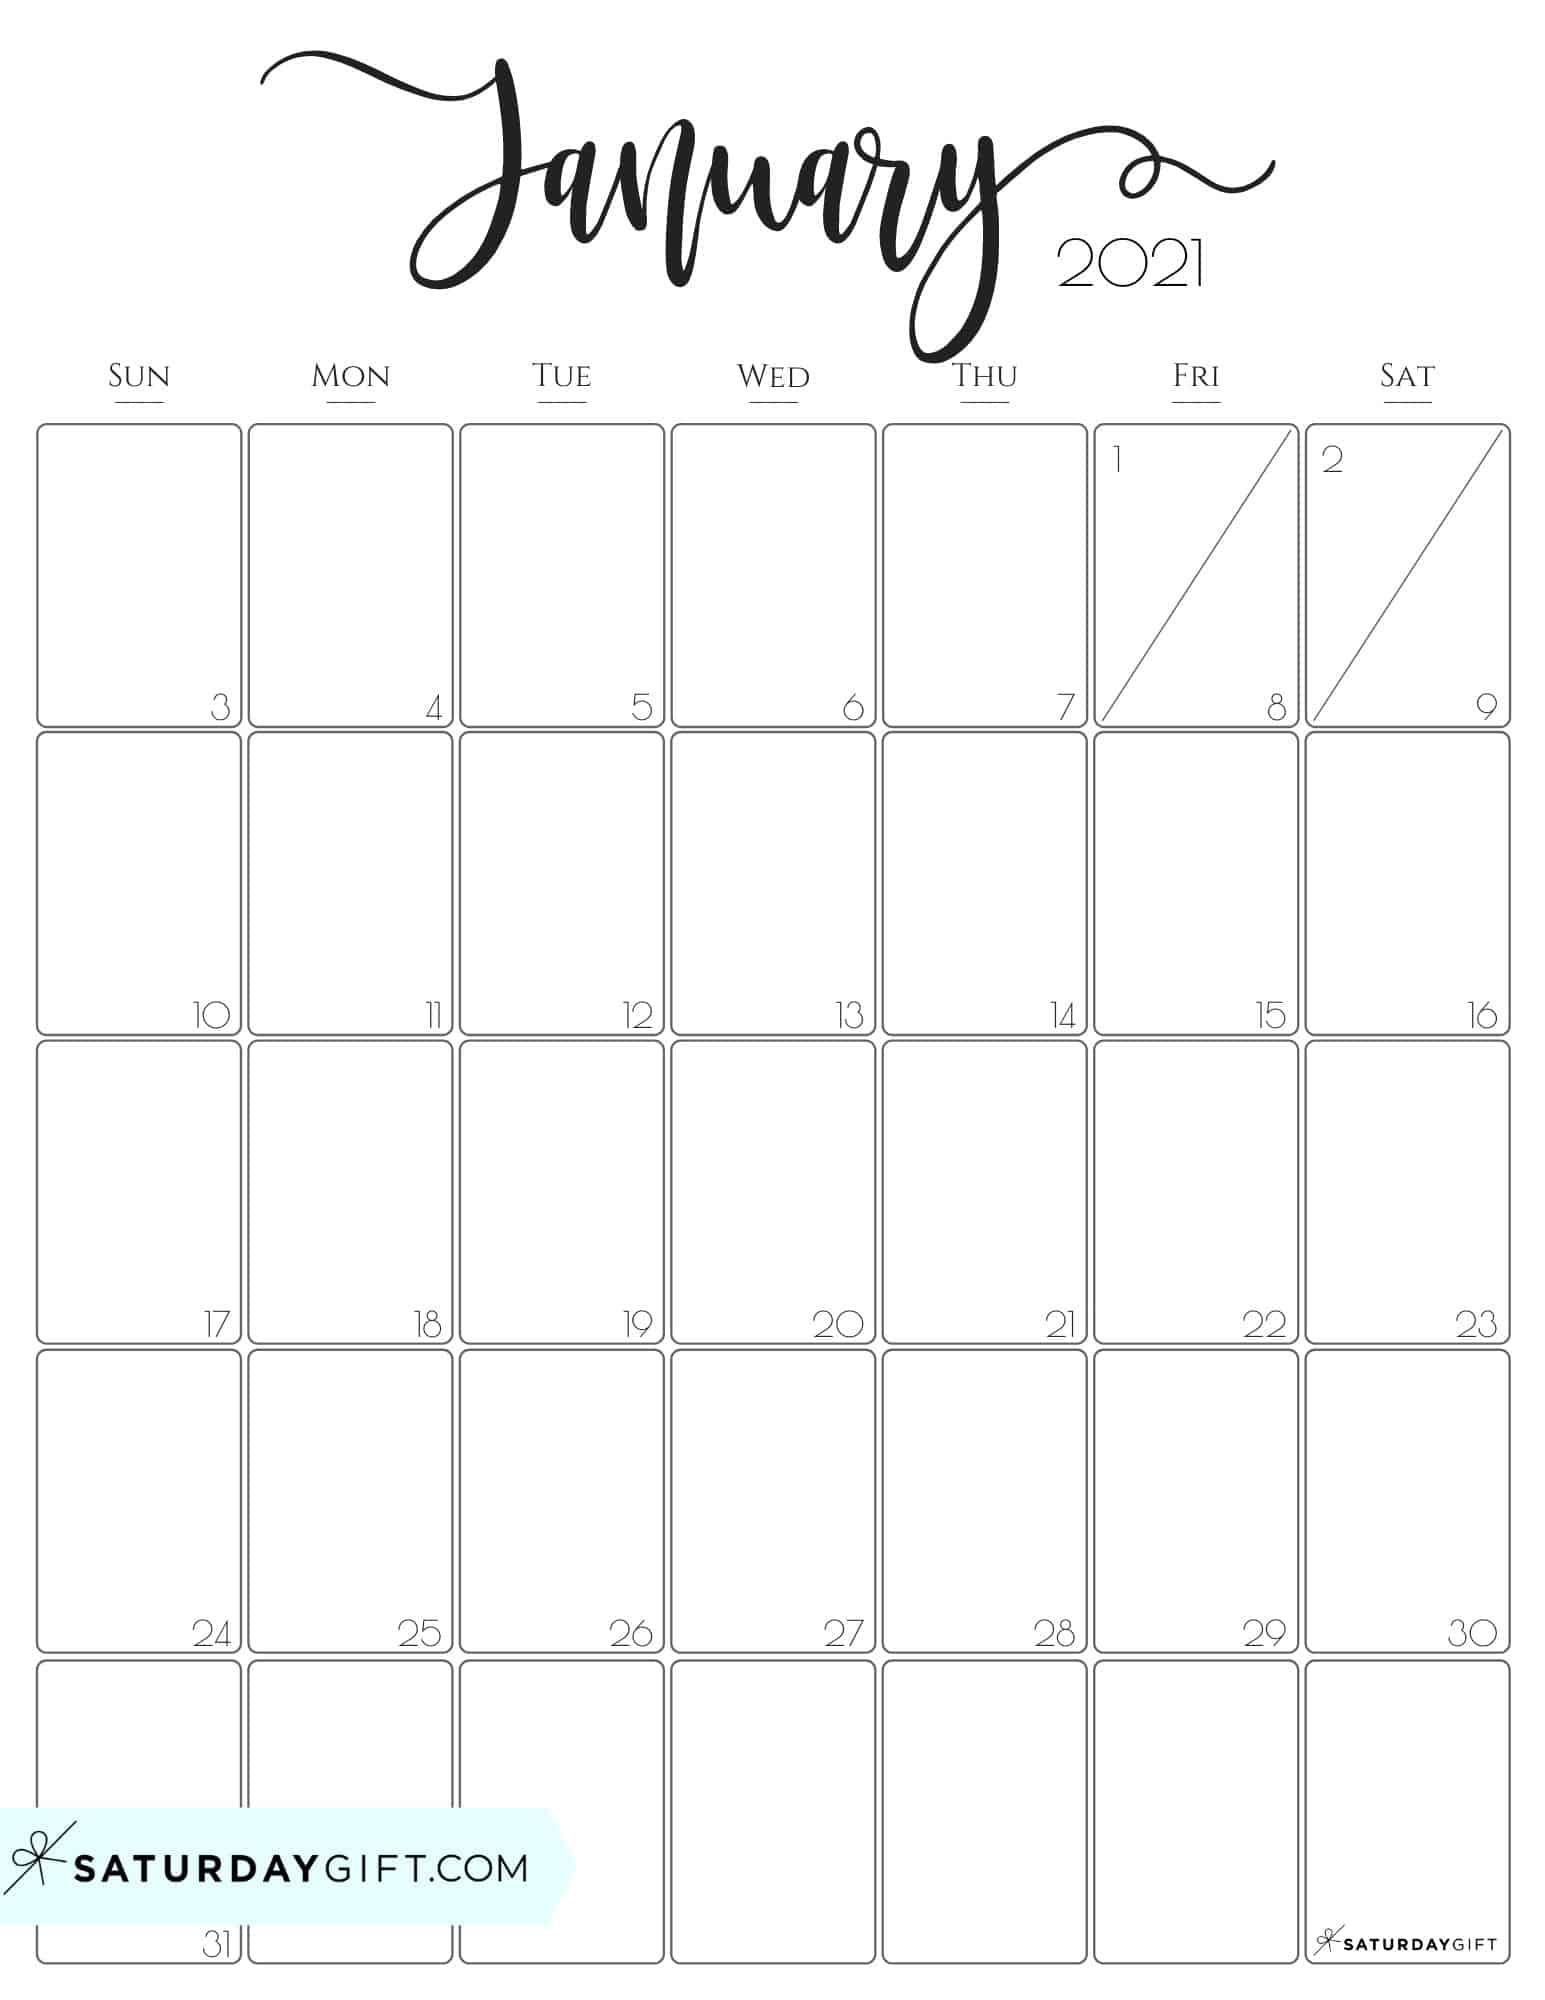 Blank Calendar Jan 2021 Cute (& Free!) Printable January 2021 Calendar | SaturdayGift in